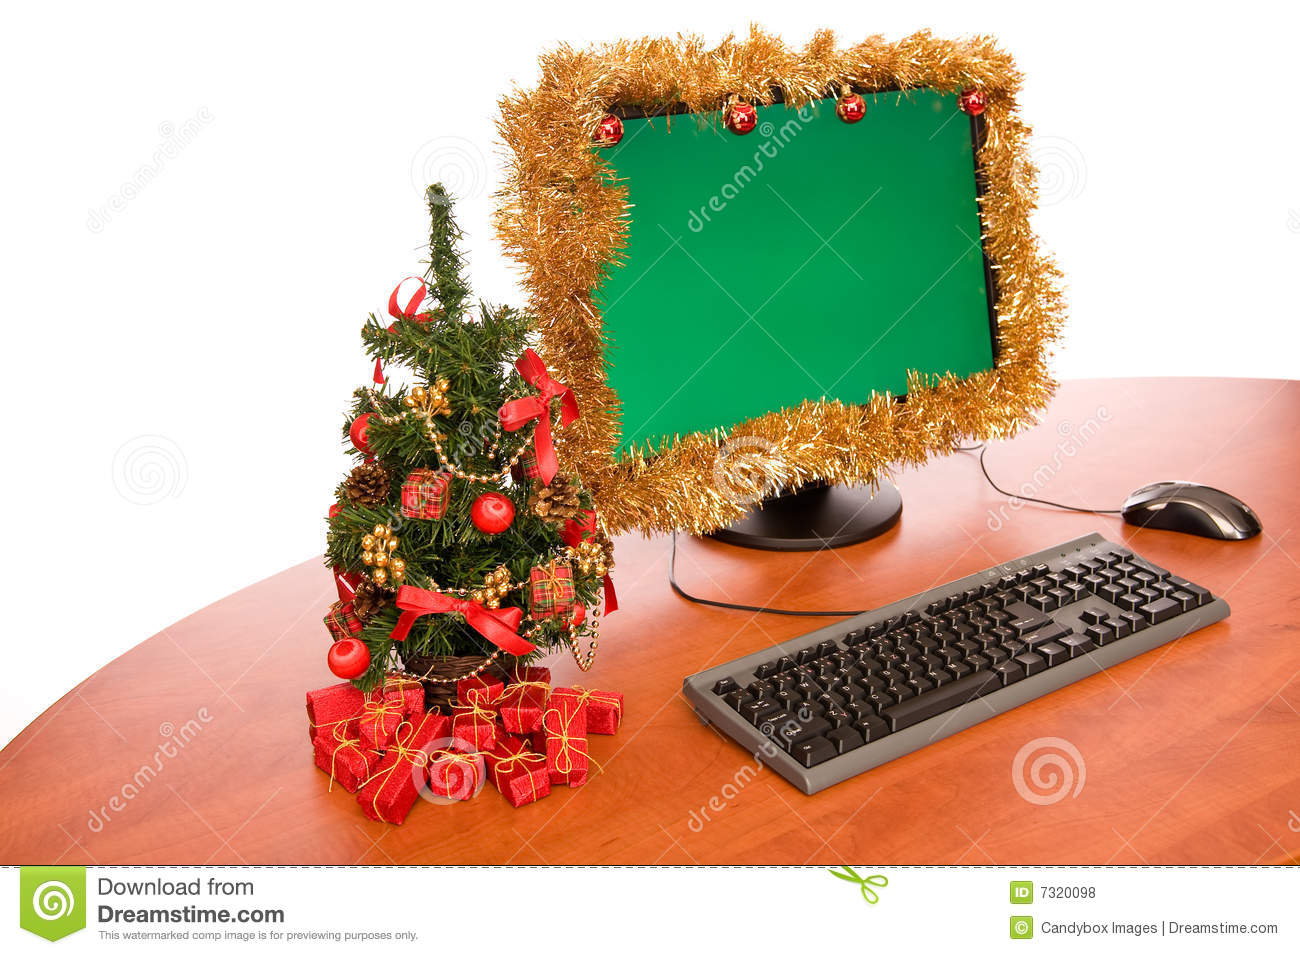 Office Desk With Christmas Decoration Stock Photo   Image Of Green, Paper:  7320098